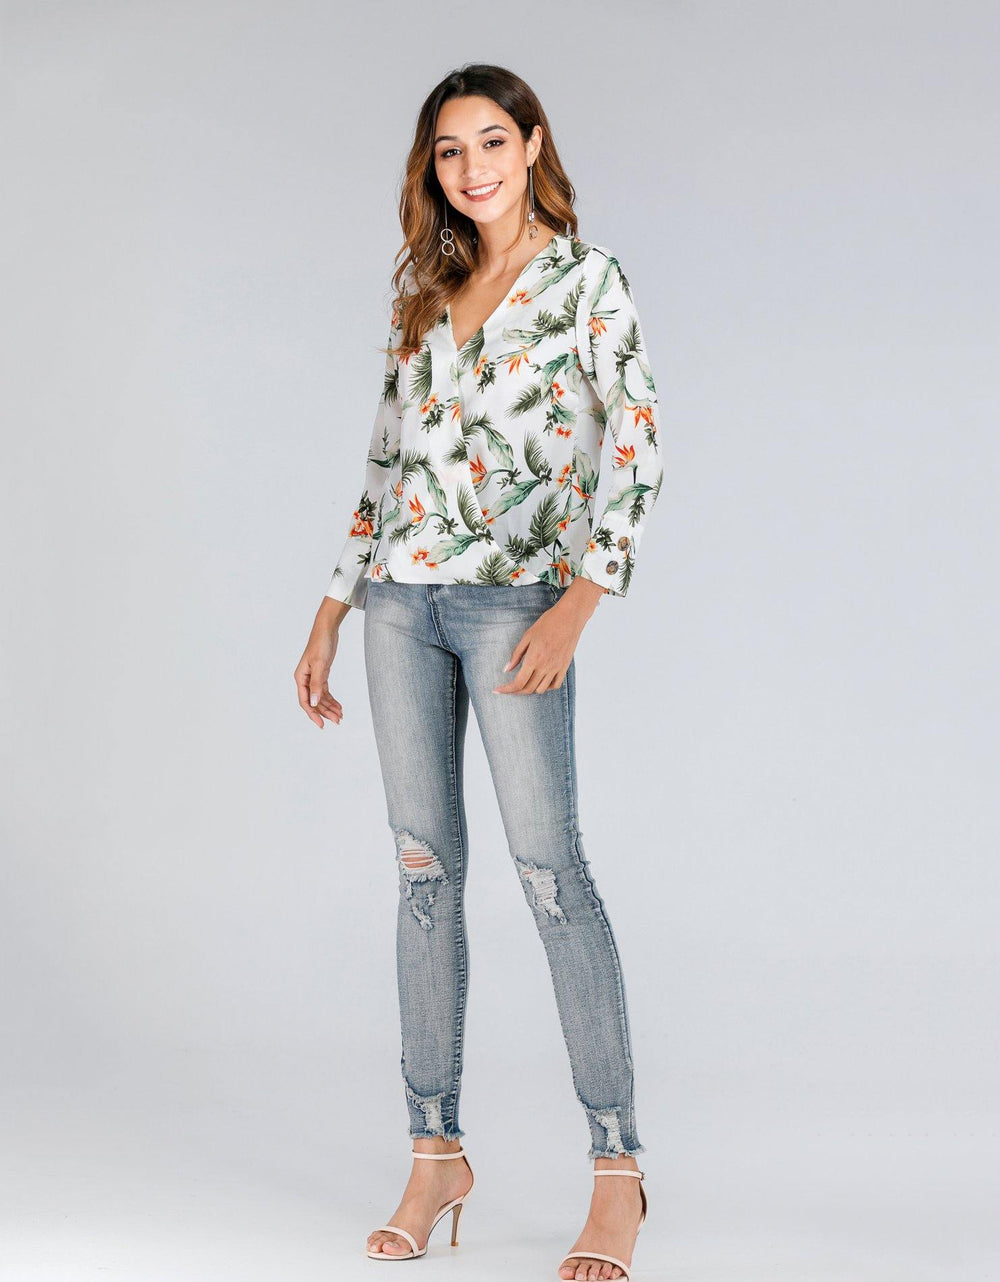 Floral Wrap Over Shirt - Brandsea UK